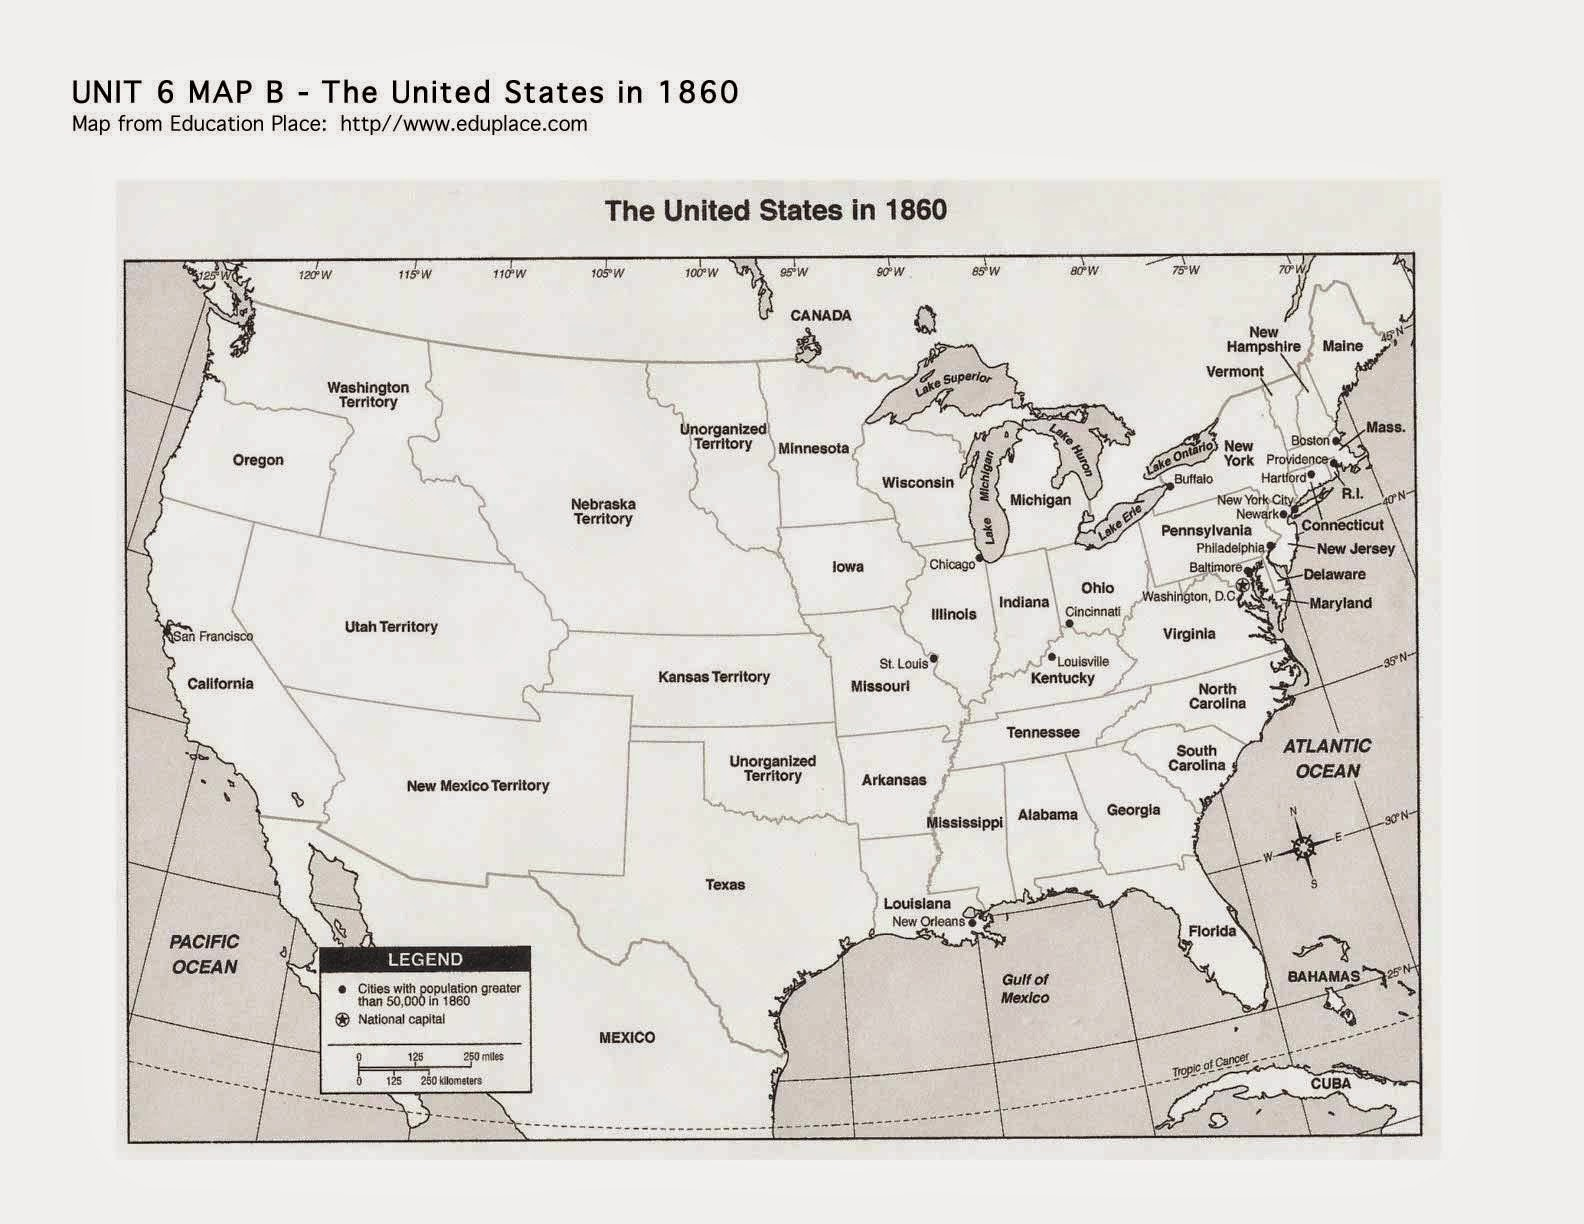 2 print off the map on the blog of the u s in 1860 color the union states blue and the confederate states gray mark the capital of the confederacy